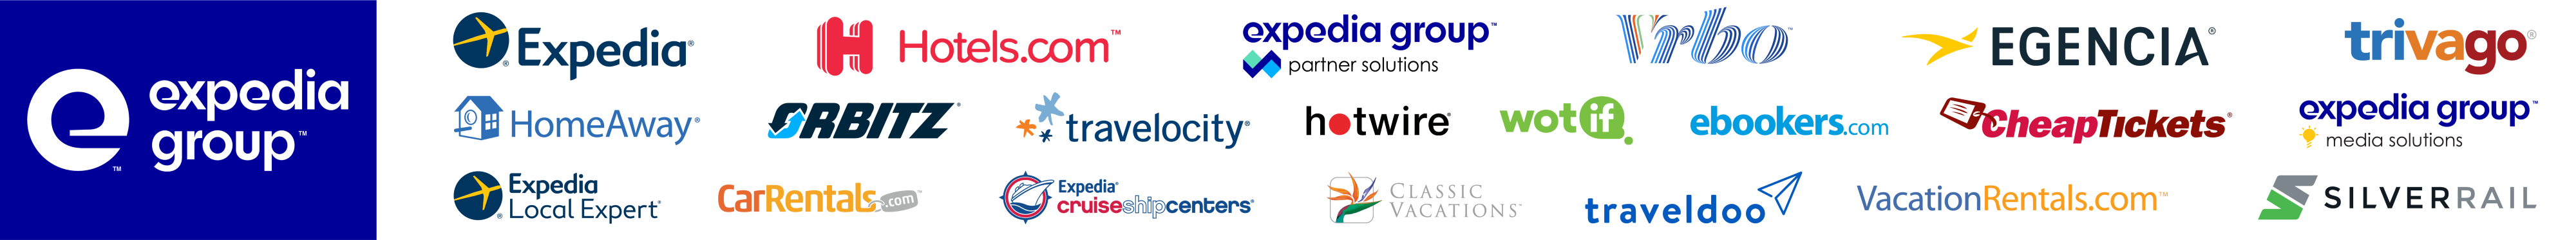 Collection of the logos of Expedia Group brands